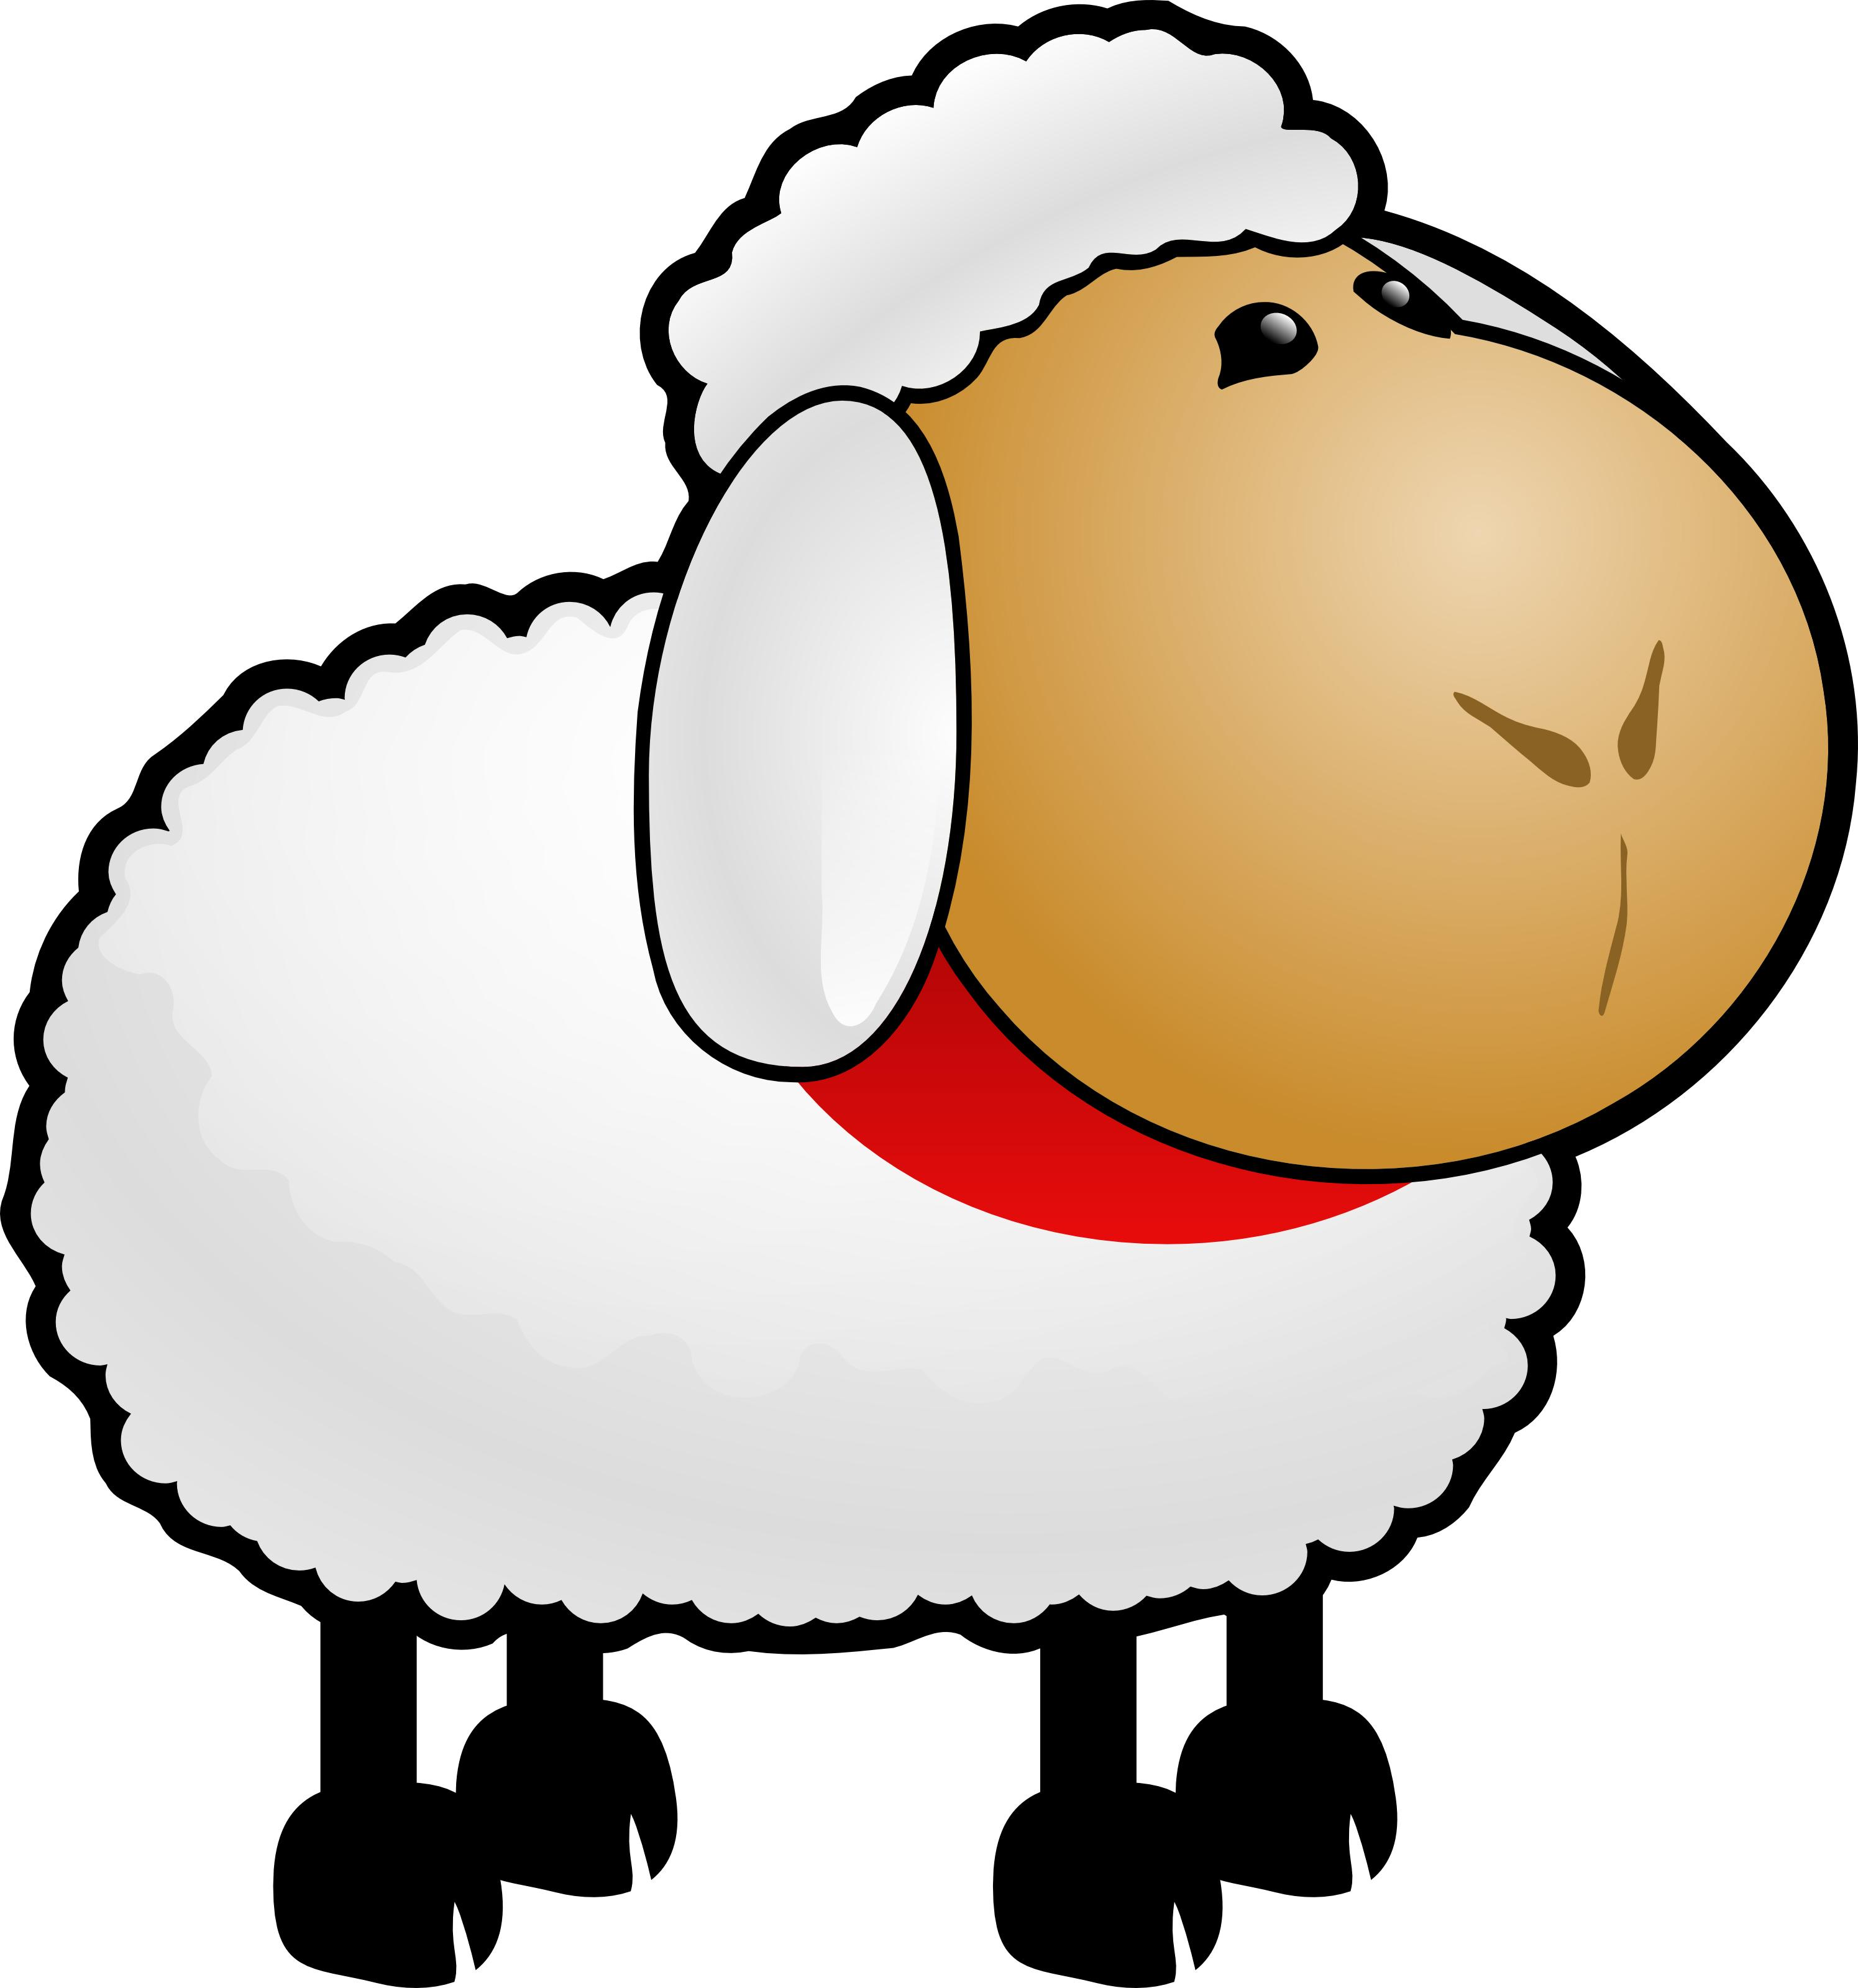 2990x3200 Top Free Cartoon Sheep Clipart Illustration Photos